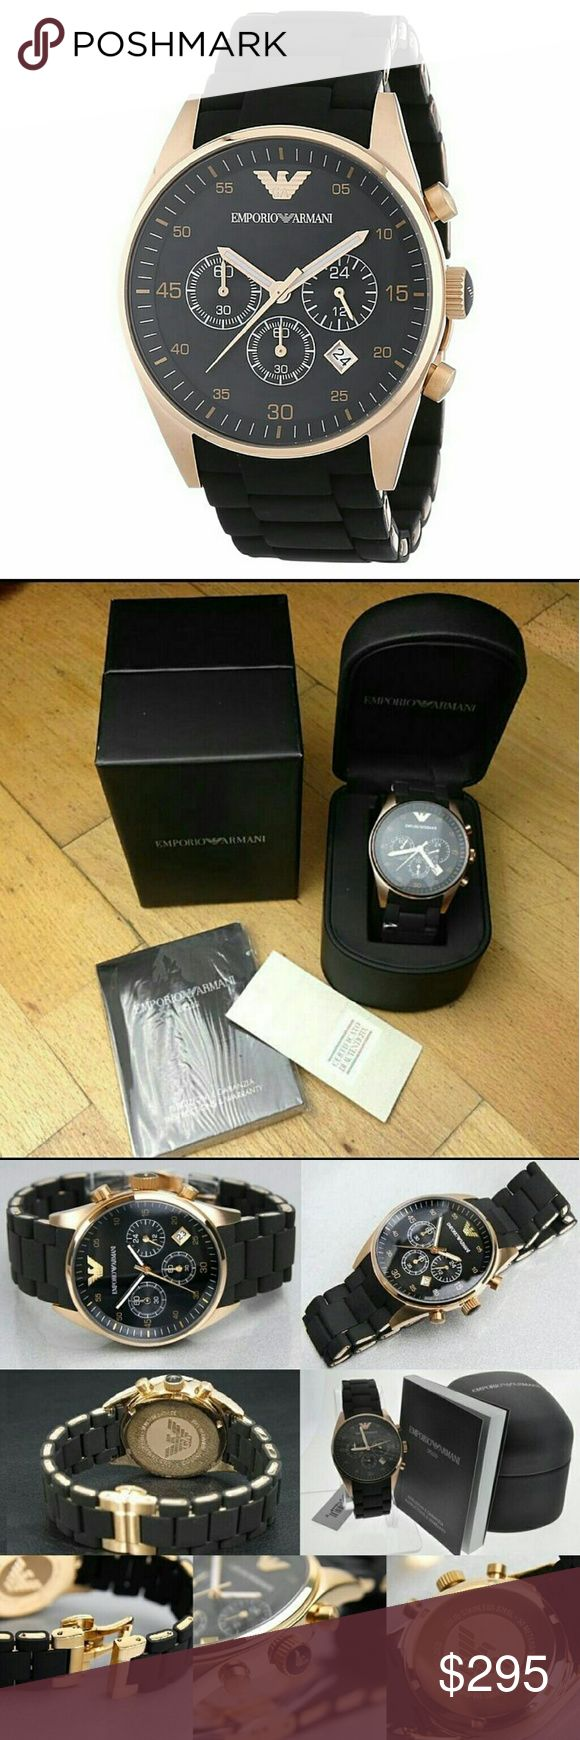 NWT Emporio Armani Chronograph rose/black watch Emporio Armani Chronograph Rose Gold Black Men's Watch  FIRM PRICE FIRM PRICE $295.00 . AUTHENTIC WATCH? . AUTHENTIC BOX? . AUTHENTIC MANUAL?  SHIPPING? PLEASE ALLOW FEW BUSINESS DAYS FOR ME TO SHIPPED IT OFF.I HAVE TO GET IT FROM MY WAREHOUSE?  THANK YOU FOR YOUR UNDERSTANDING? Emporio Armani Accessories Watches